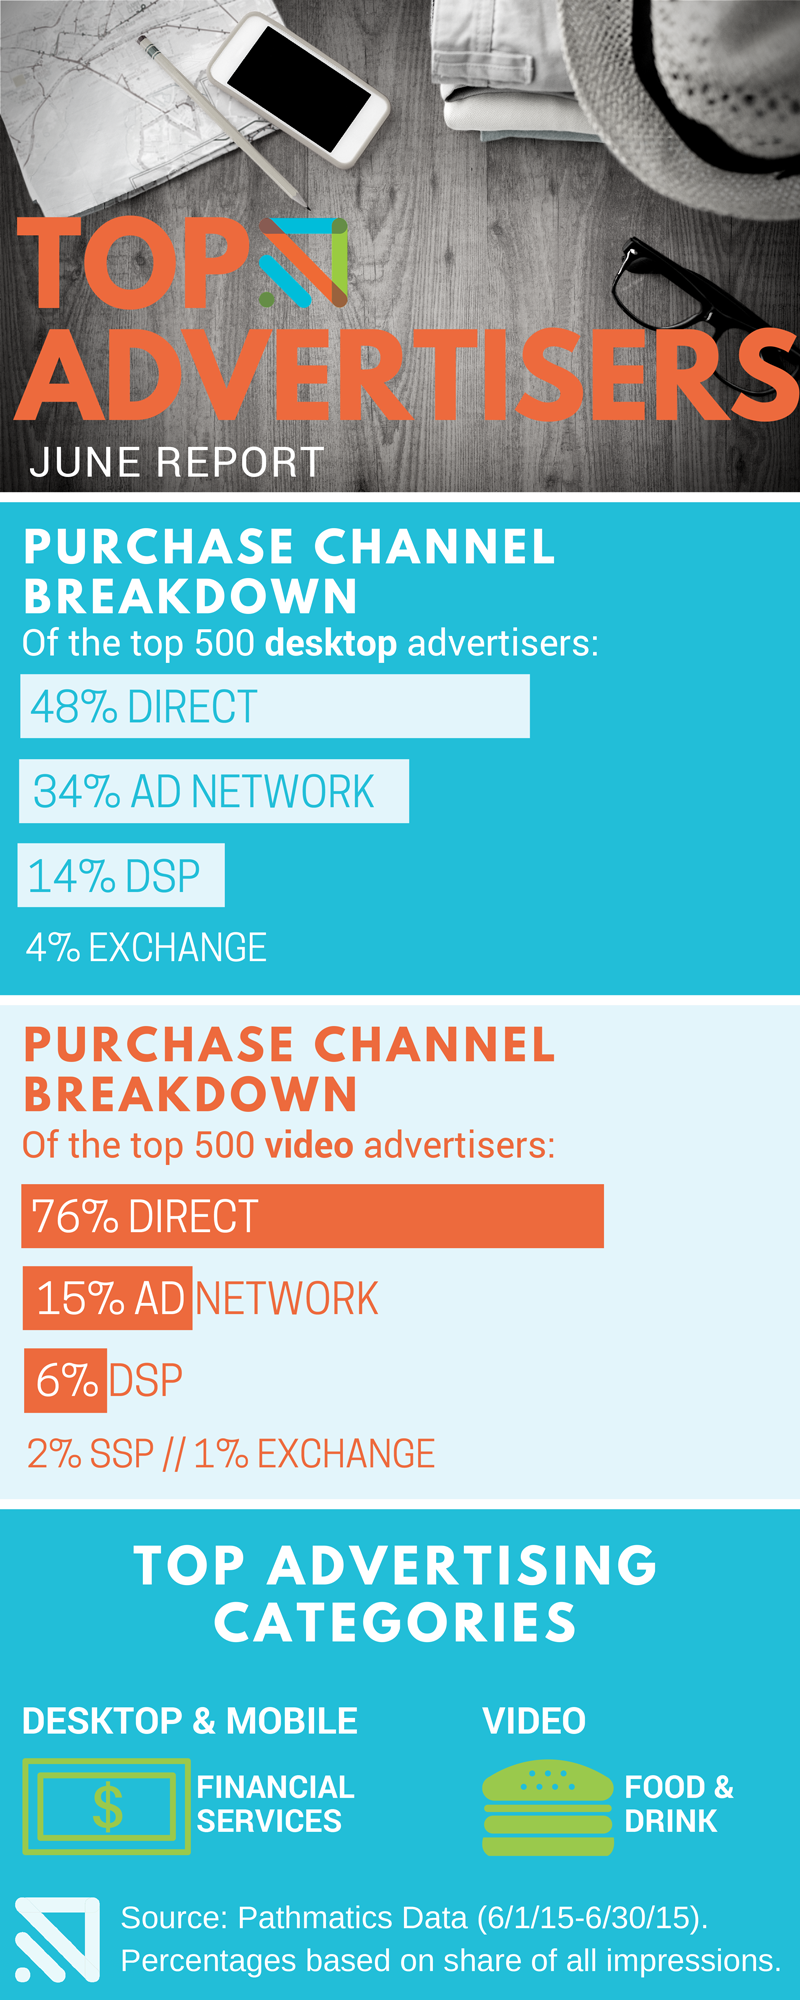 June-Top-ADVERTISERS-infographic